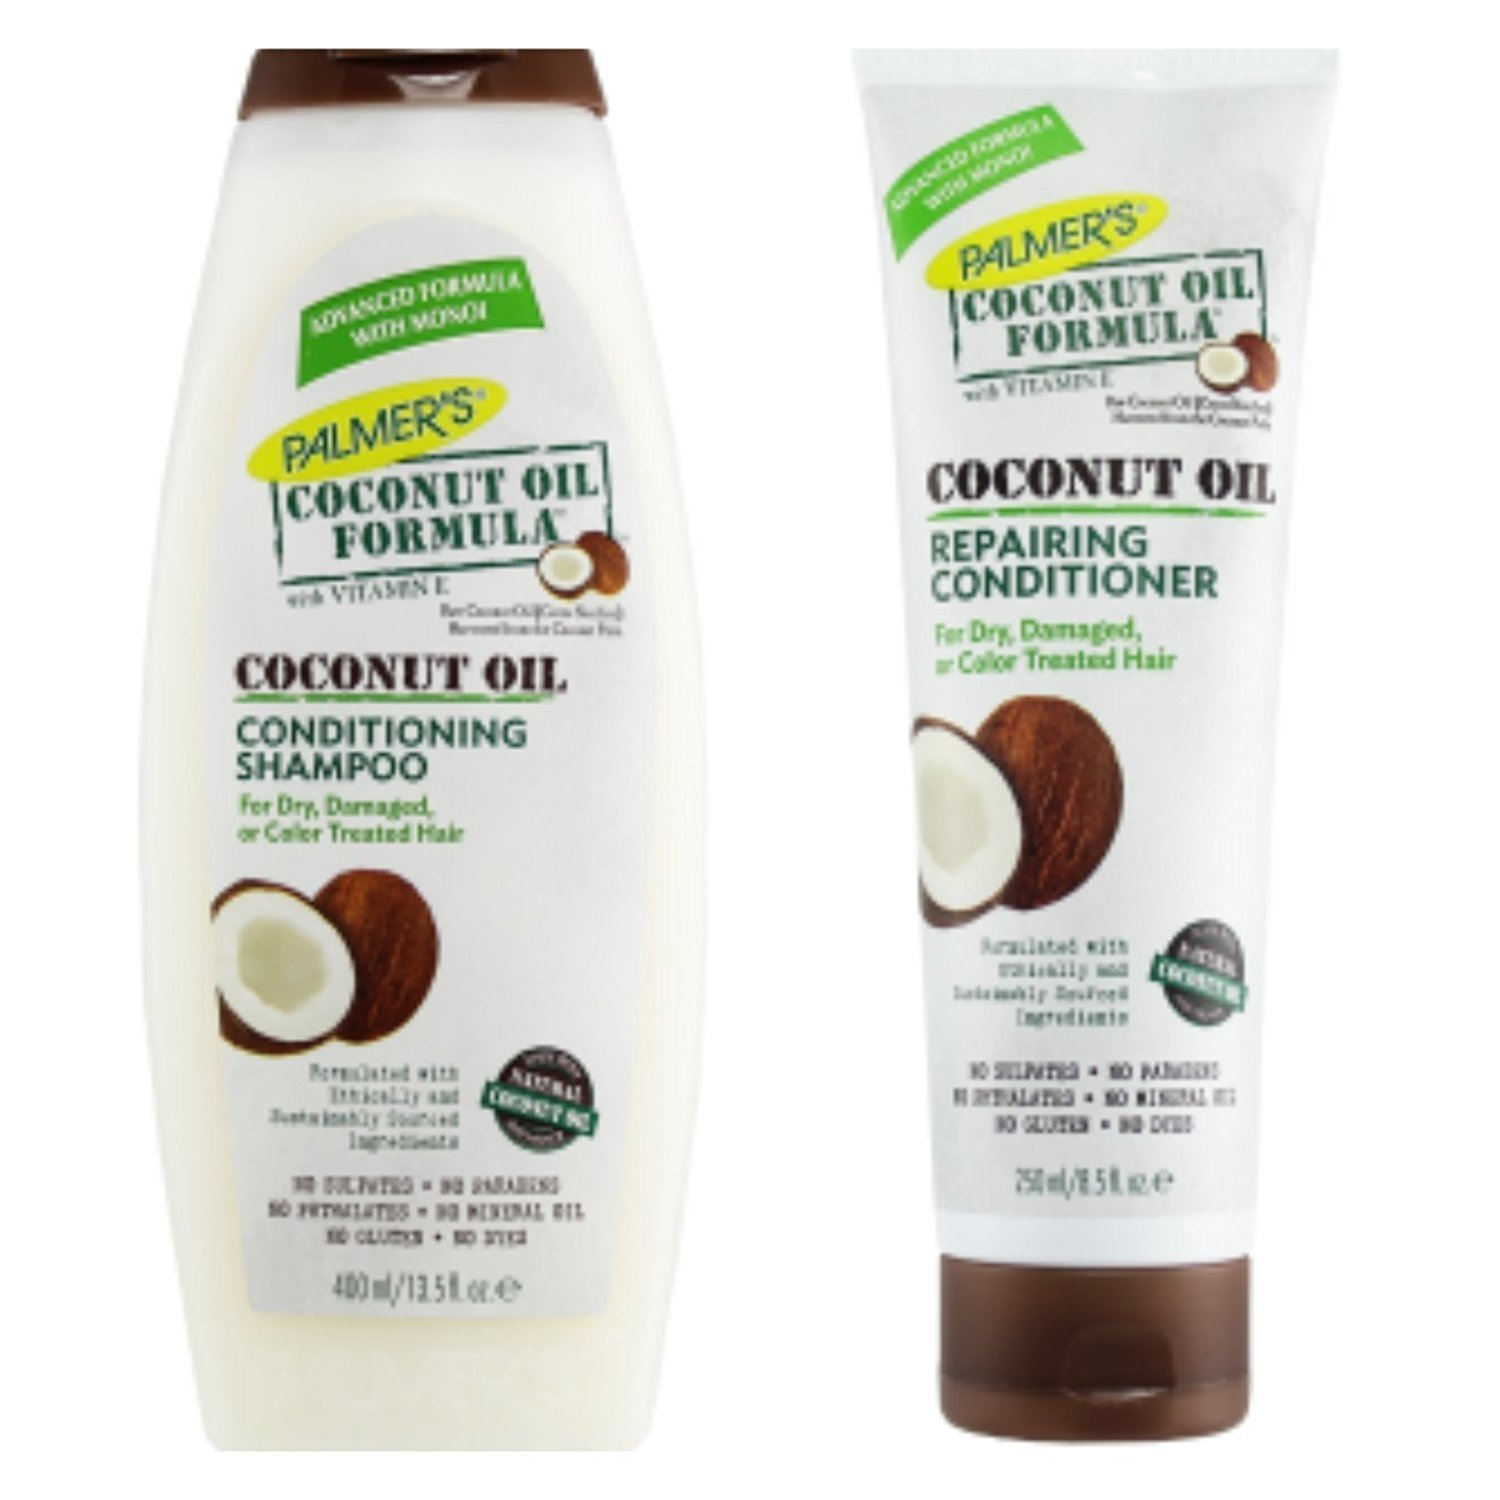 Conditioning with coconut oil